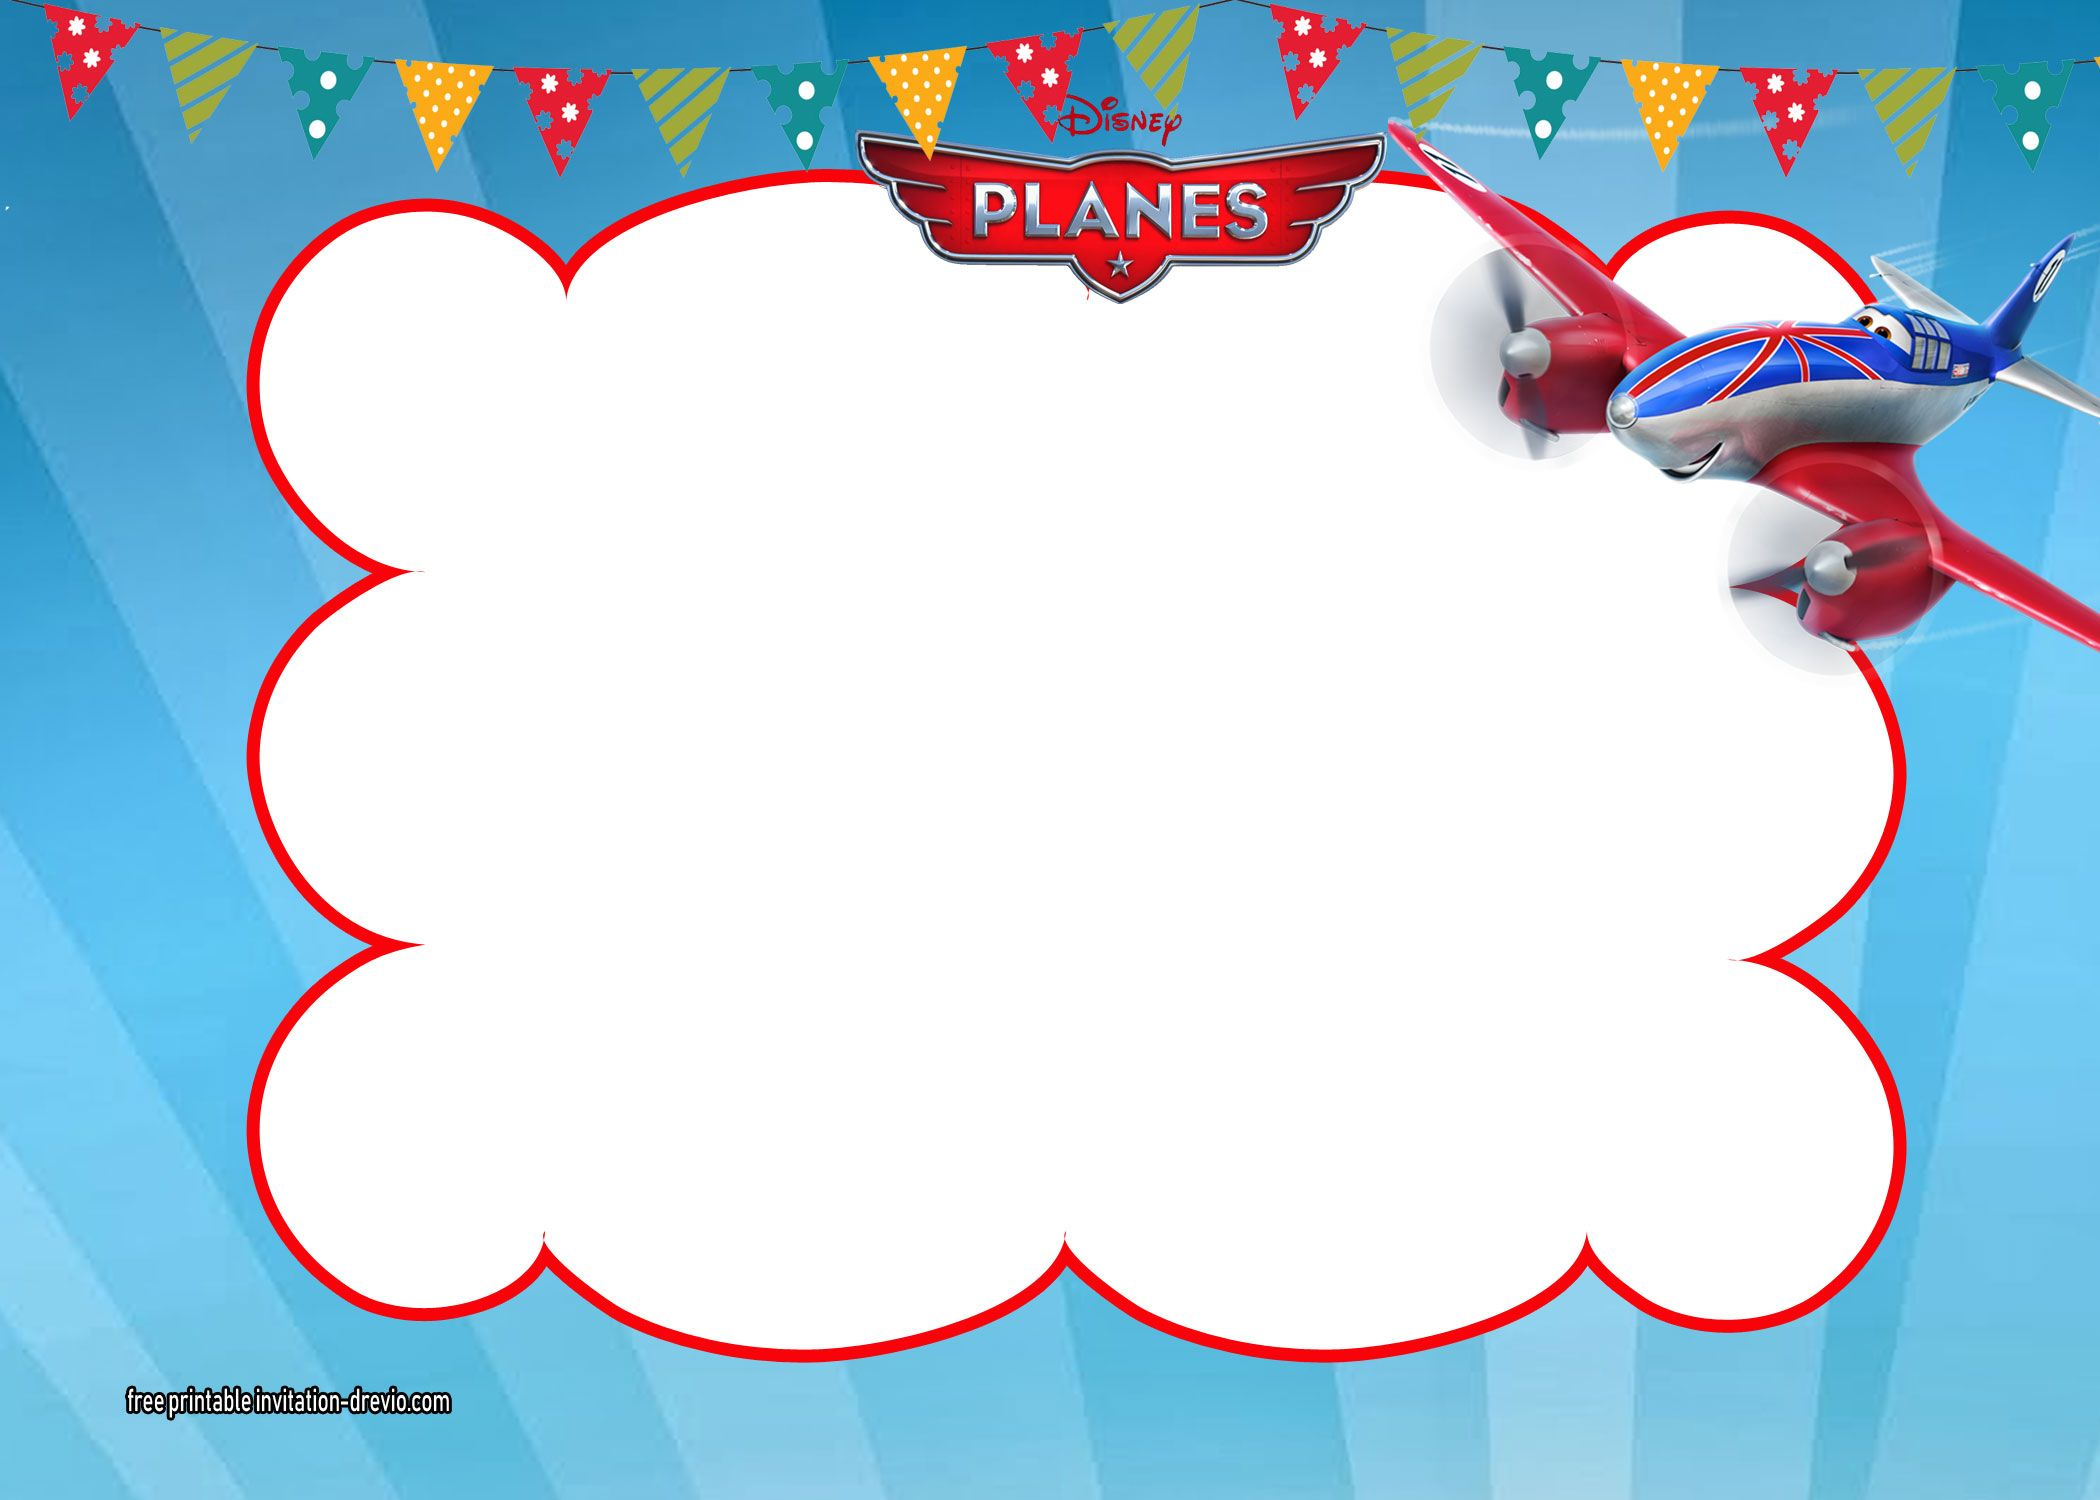 Disney Planes Invitations Templates  DREVIO  Disney planes